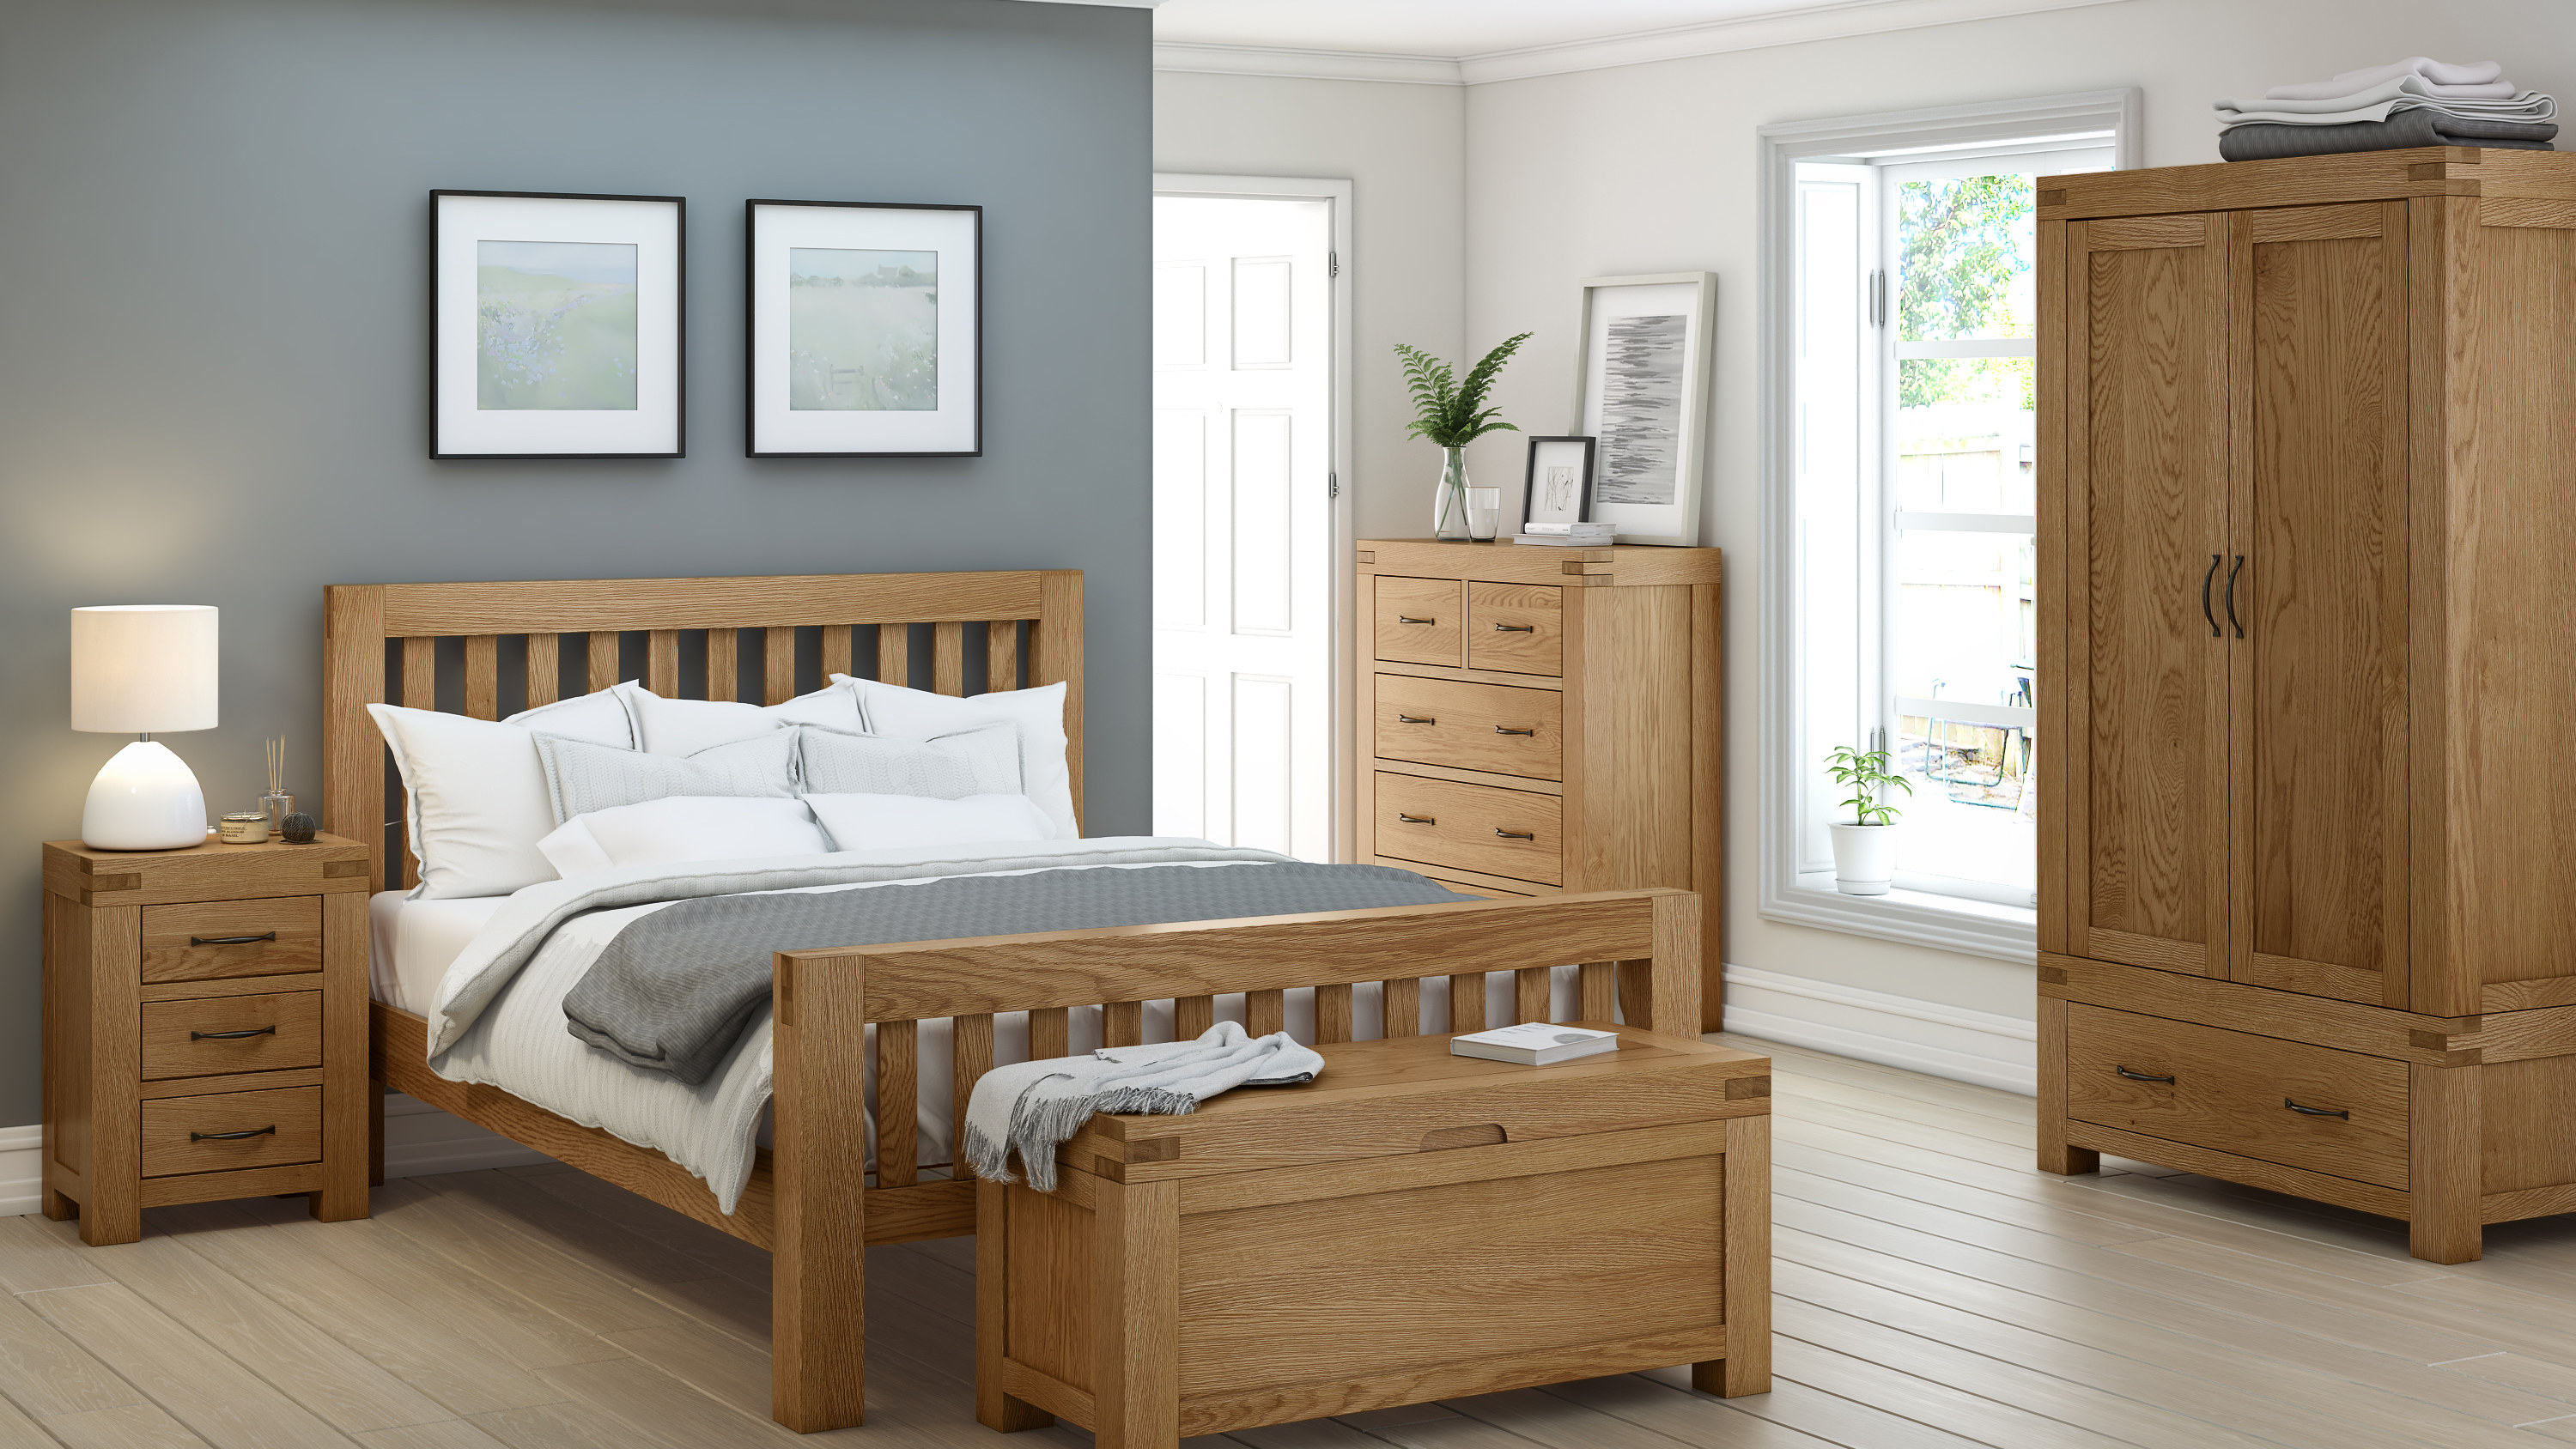 Rustique Home Roma bedroom shot with 100% rustic look with Oak bed, chest of drawers, storage box, wardrobe and bedside table